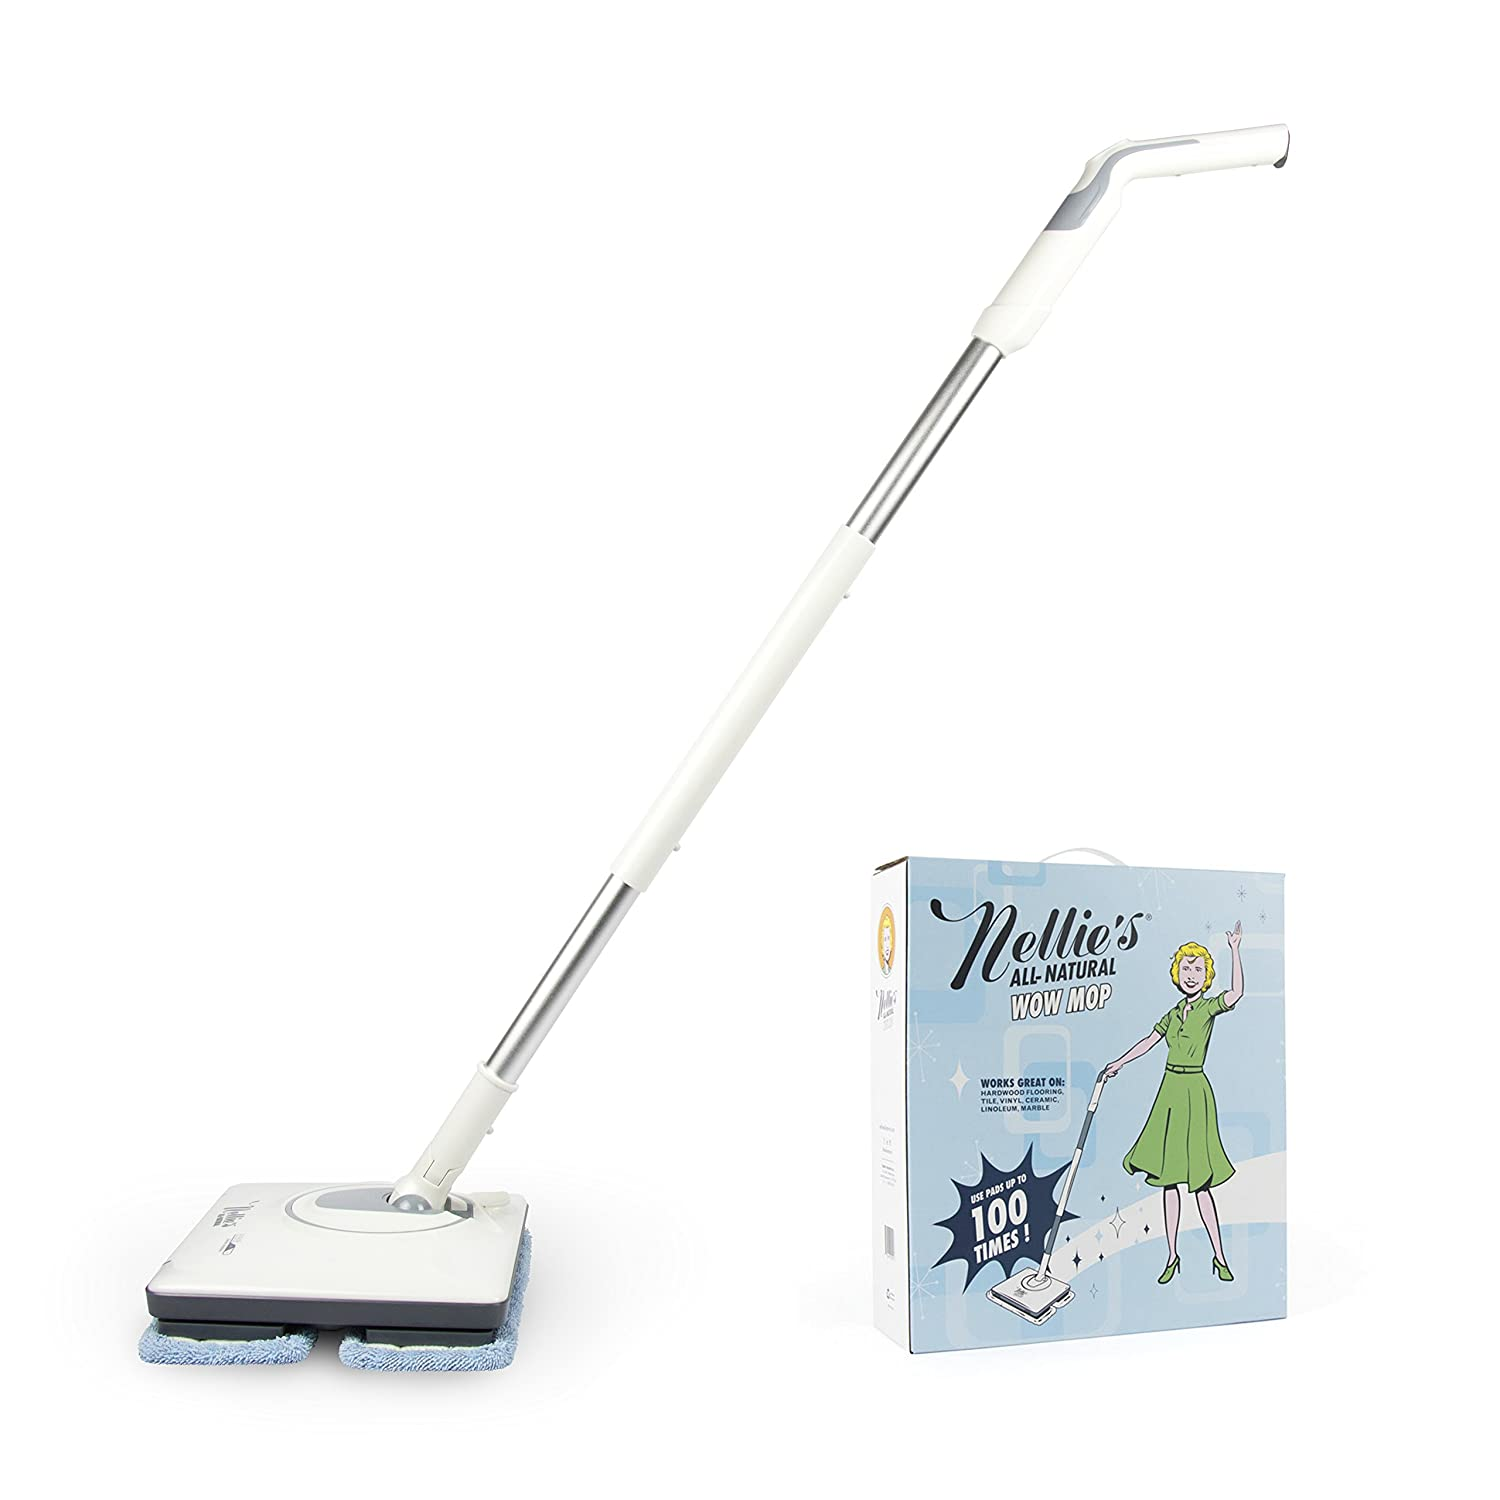 Nellie's All-Natural Wow Mop- Cordless, Light-Weight and Rechargeable Batten Industries